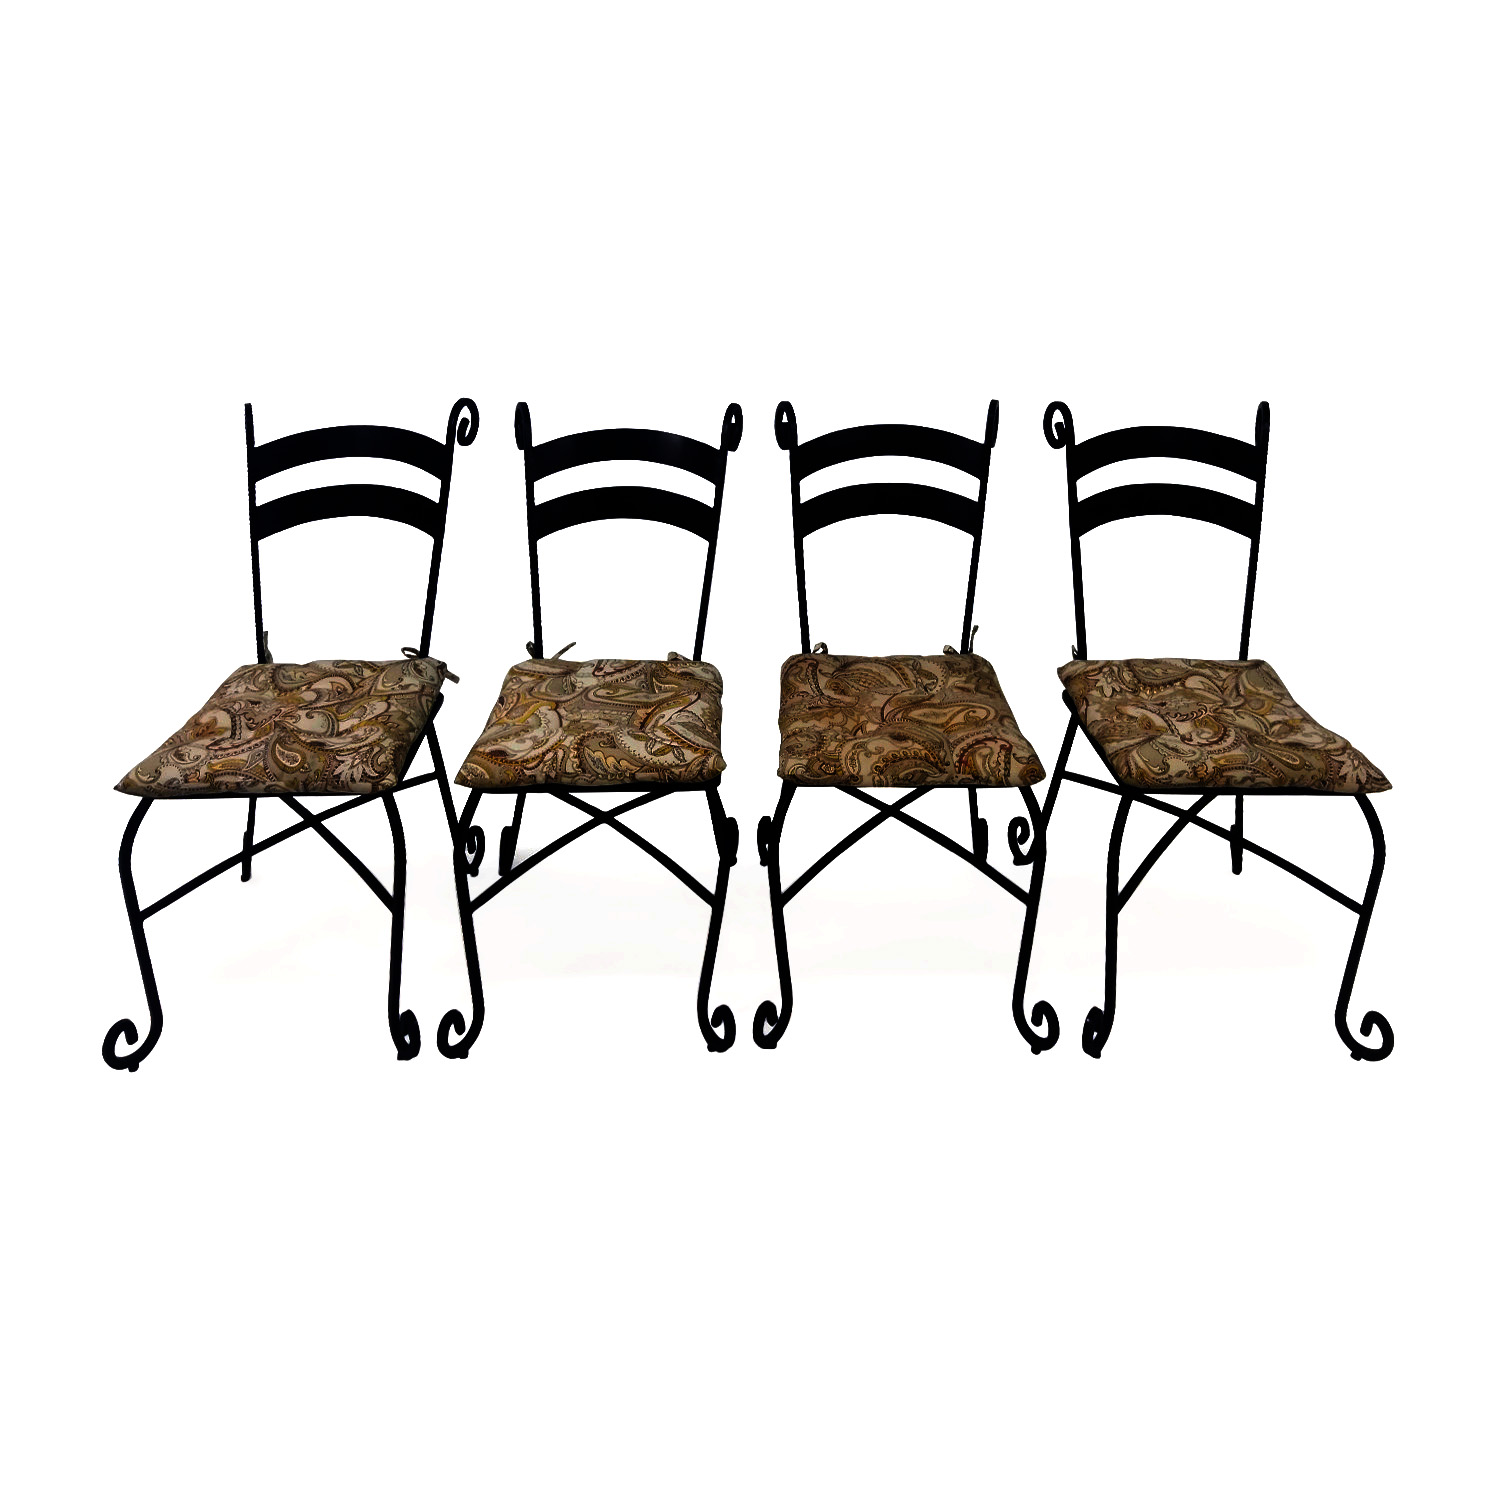 Iron Outdoor Chairs Set of 4 discount